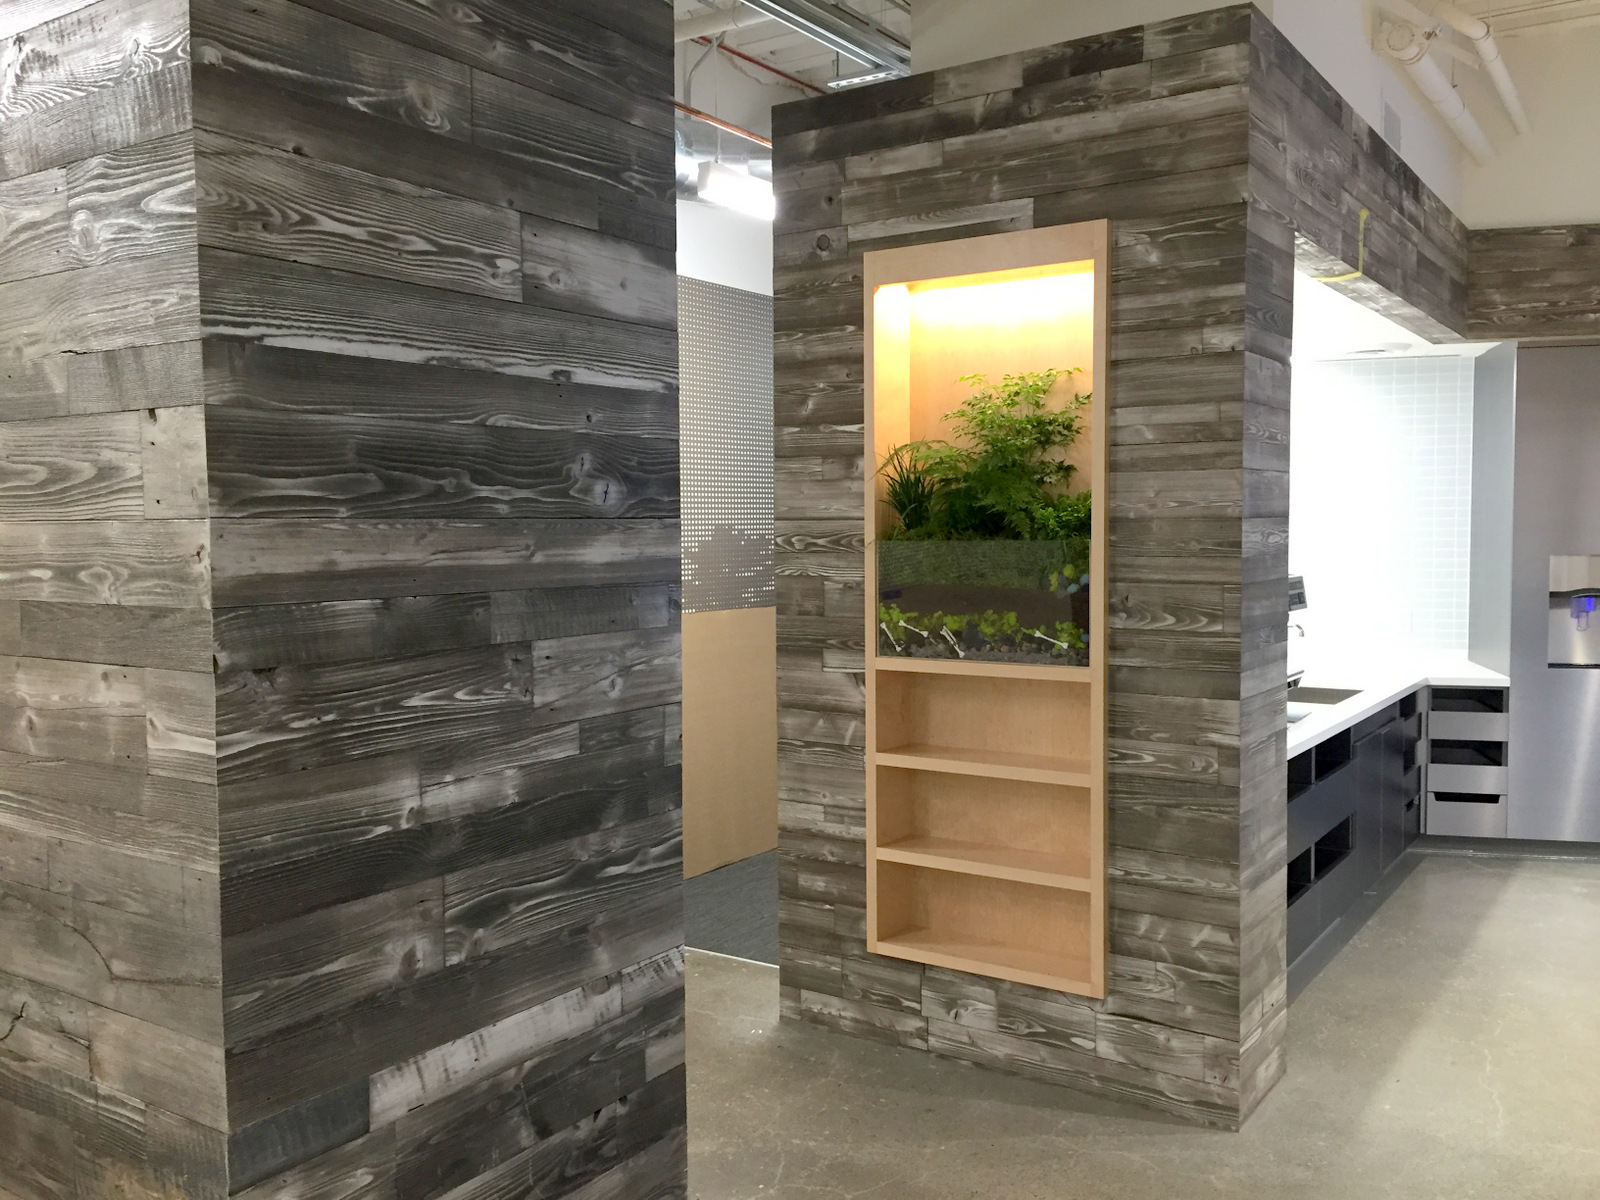 Adding a reclaimed wood wall sustainable lumber company for Reclaimed pallet wood wall